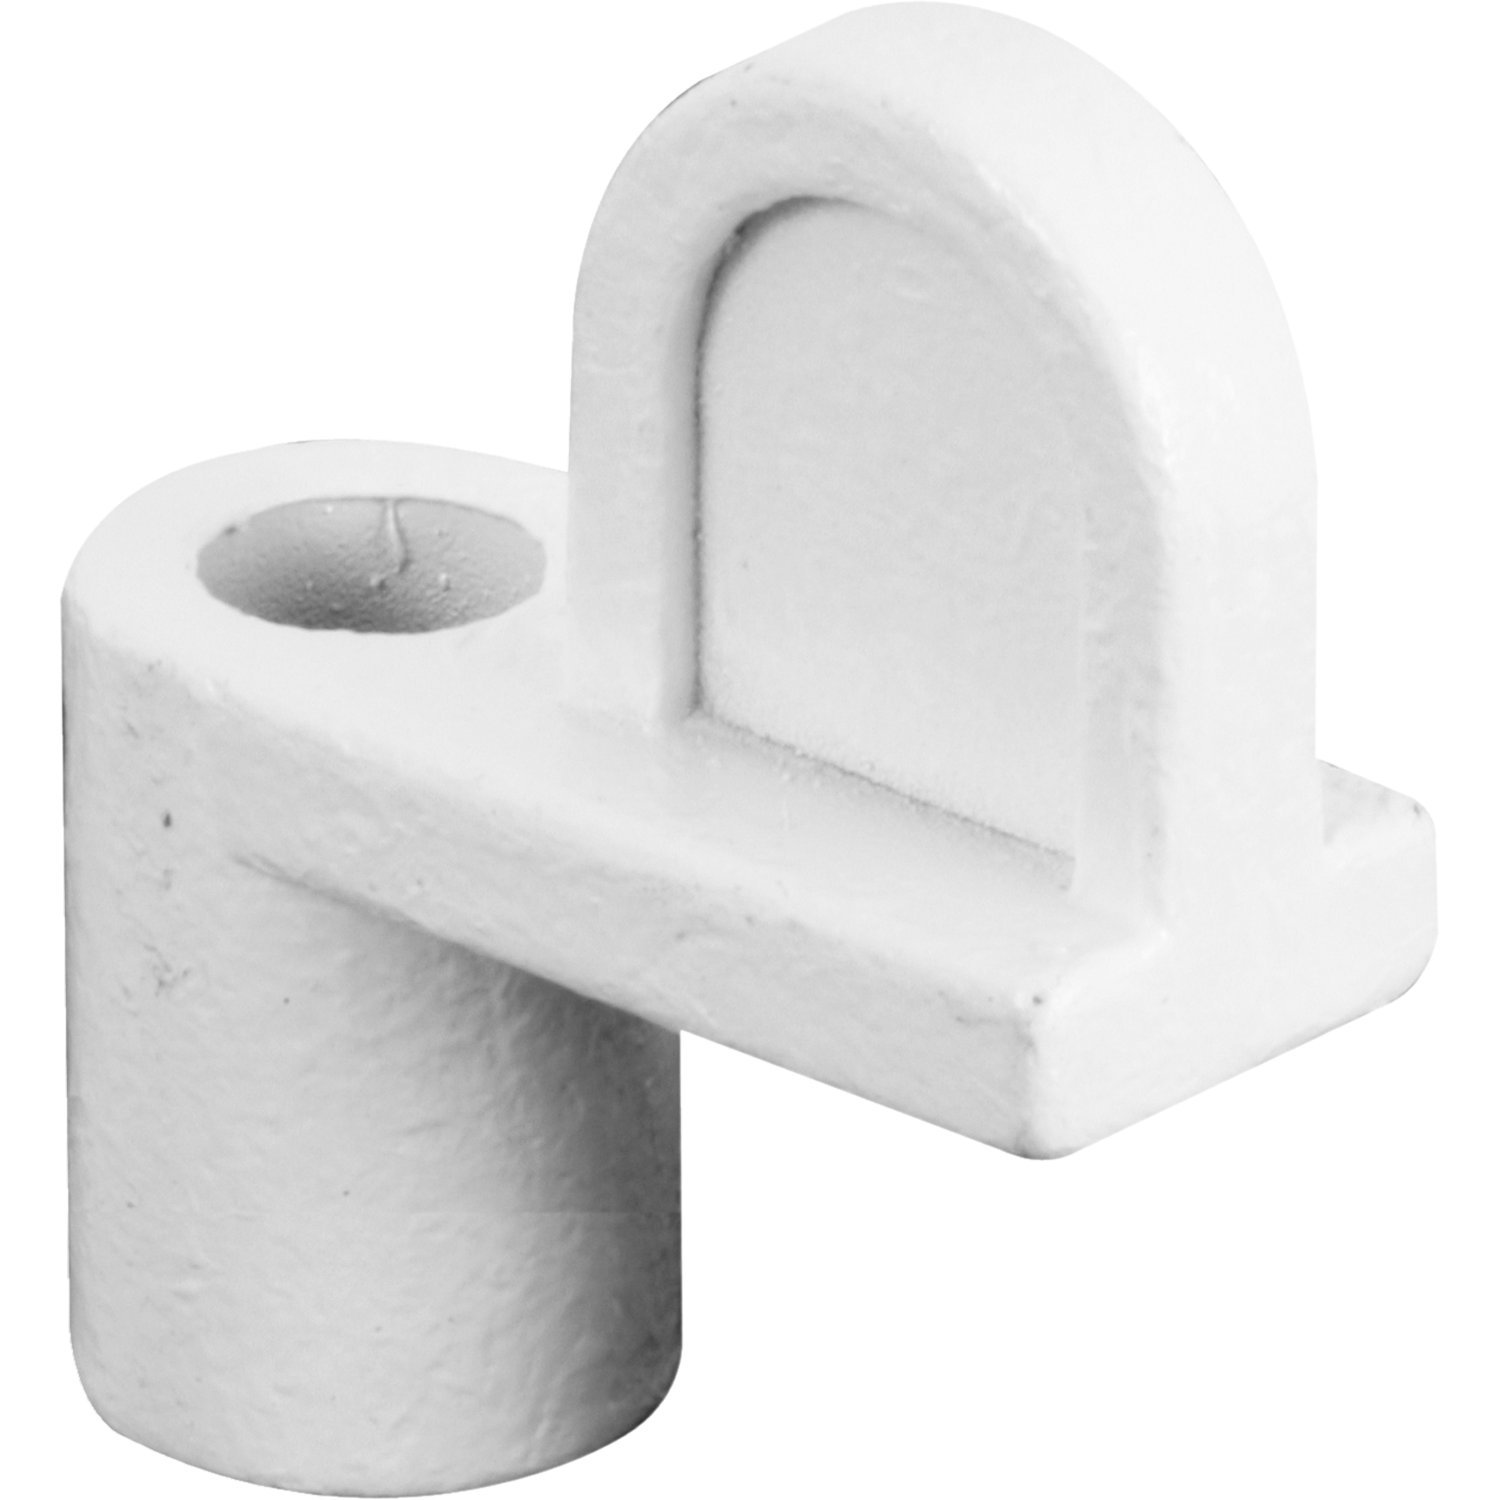 Prime-Line Products PL 7893 Prime Line Pl7893 Window Screen Clip, 5/16 in D